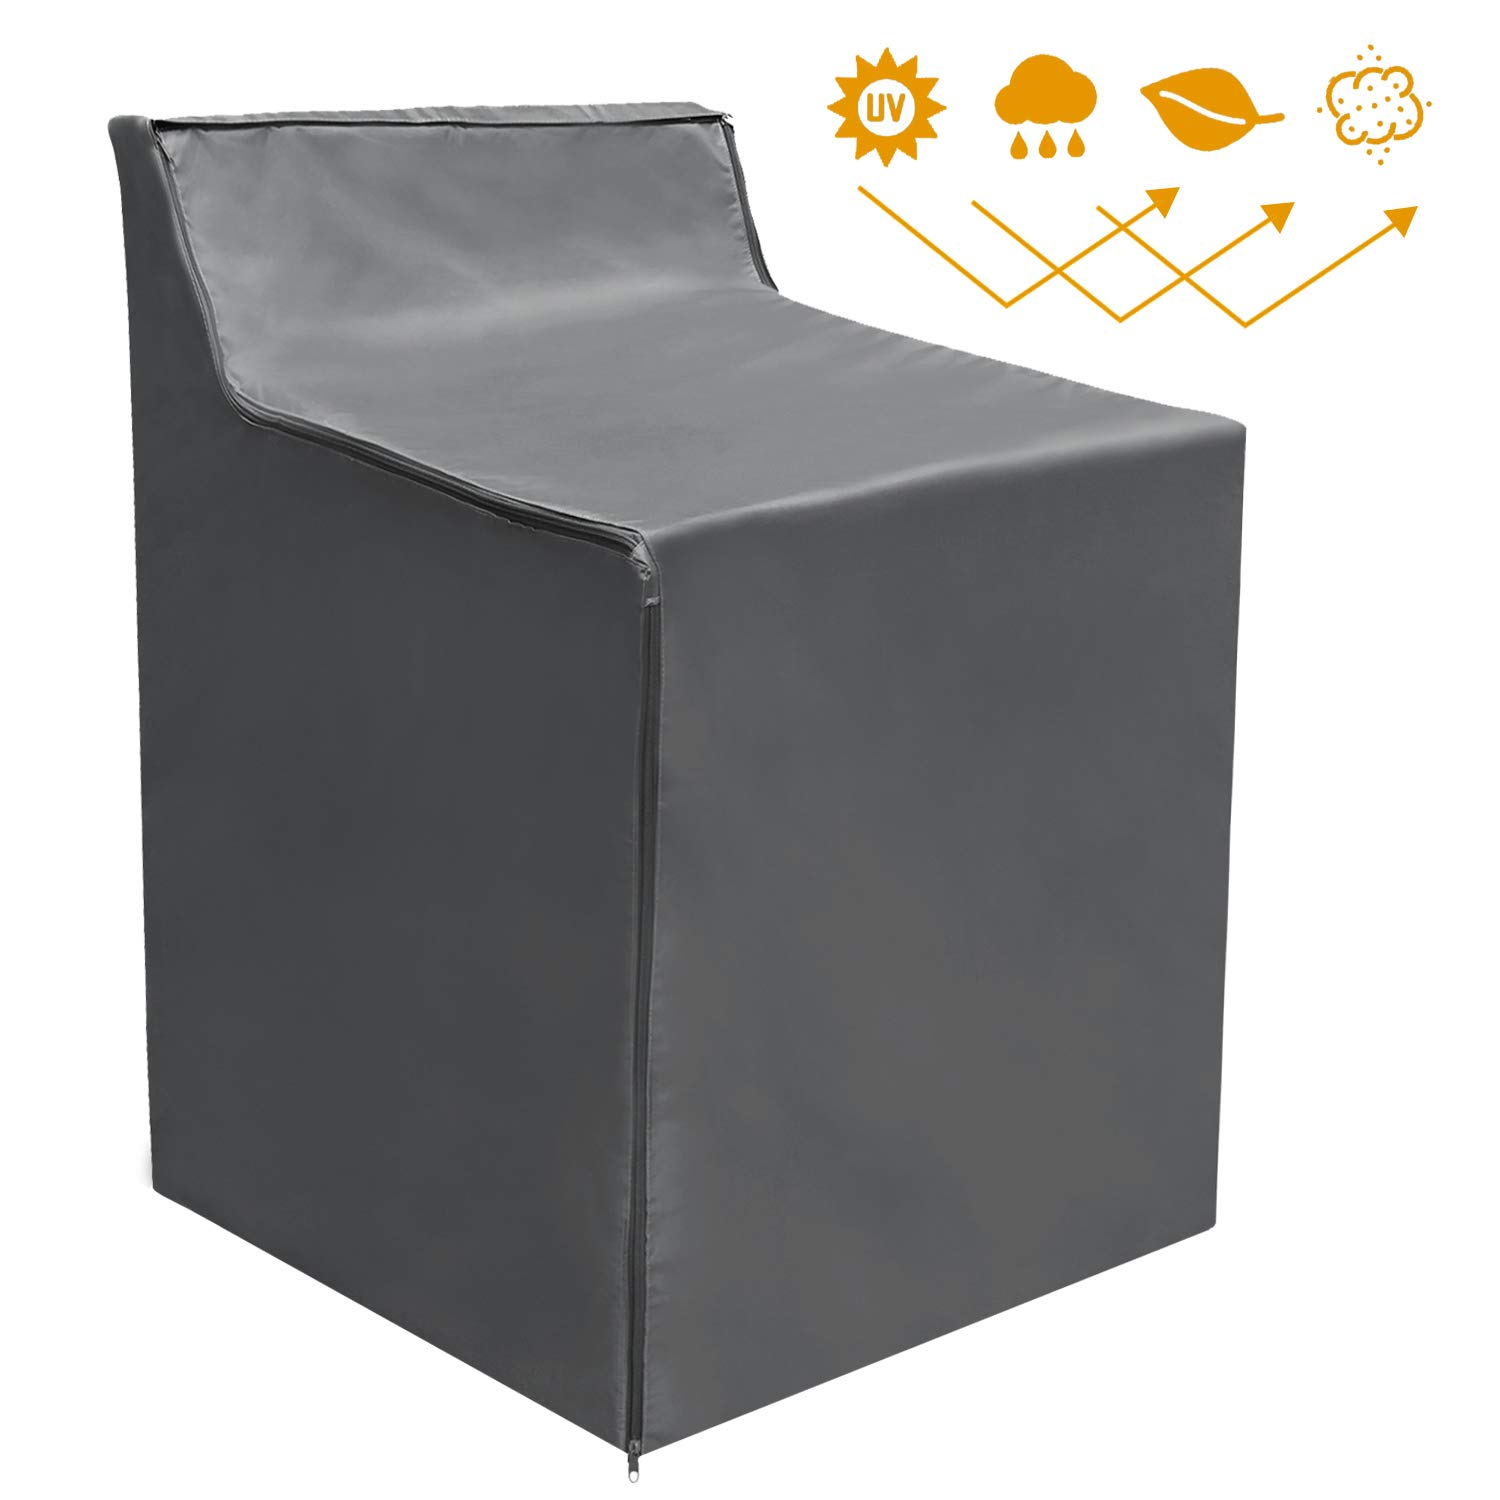 Washing Machine Cover Waterproof Sunscreen Thicker Fabric Zipper Design for Easy use by AKEfit